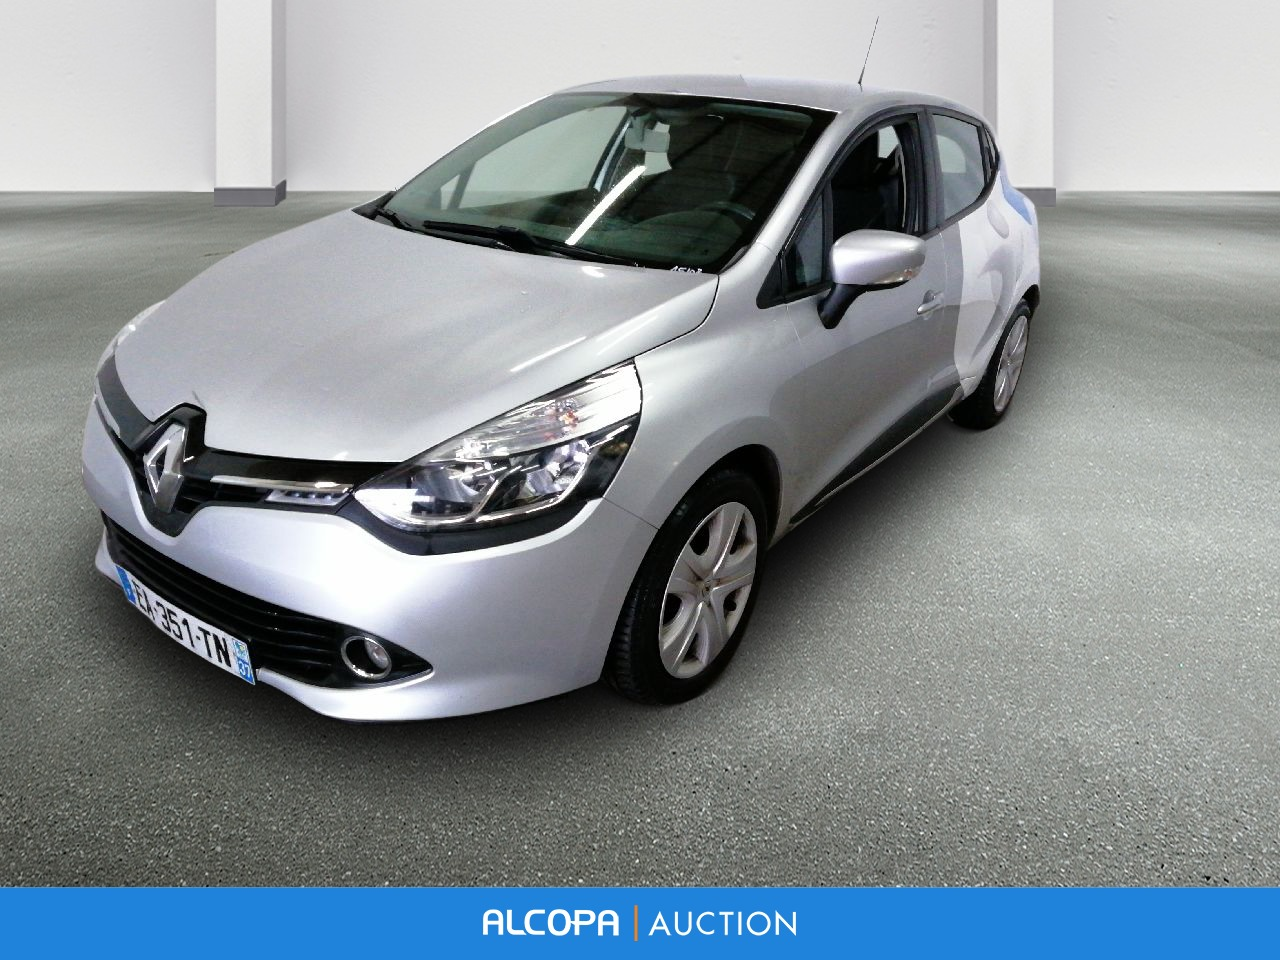 renault clio iv clio iv dci 75 energy business alcopa auction. Black Bedroom Furniture Sets. Home Design Ideas